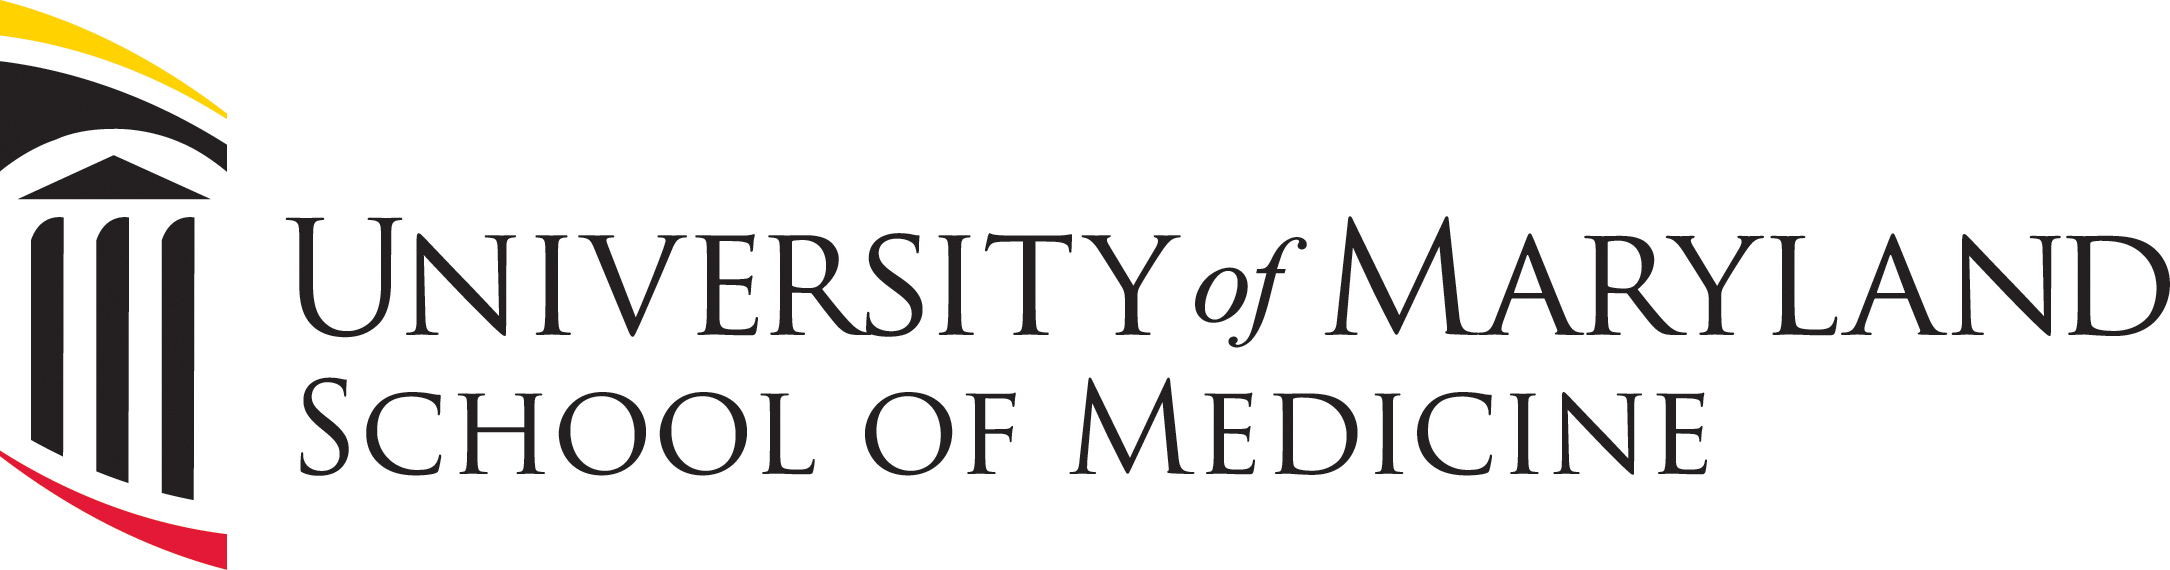 University of Maryland School of Medicine, Epidemiology and Public Health